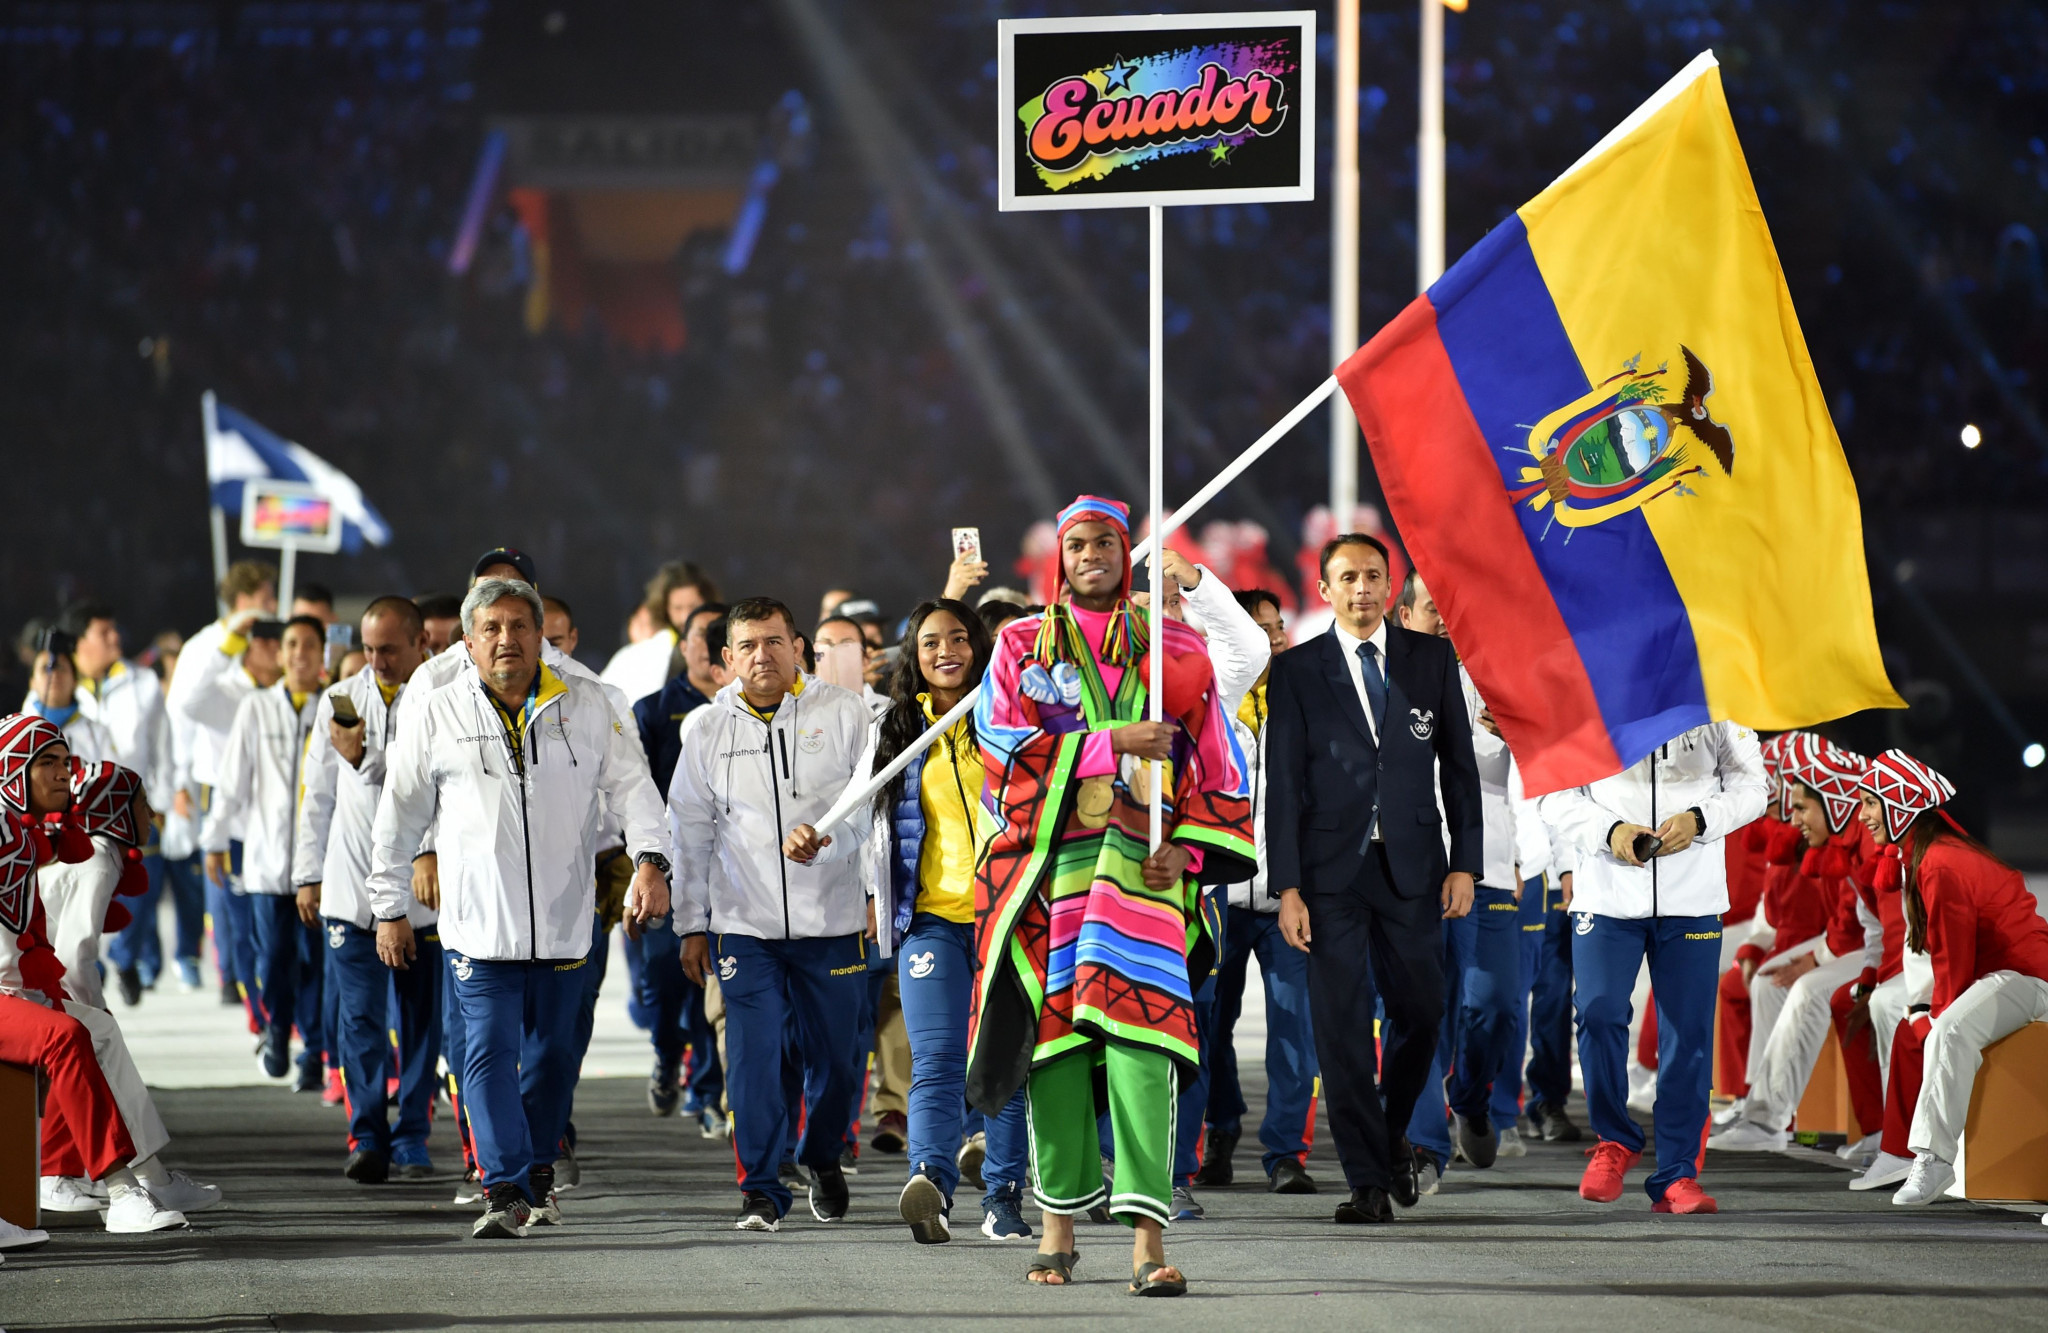 Tamara Salazar - Ecuador's flagbearer at the Liam 2019 Pan American Games Opening Ceremony - was in impressive form in Cali ©Getty Images